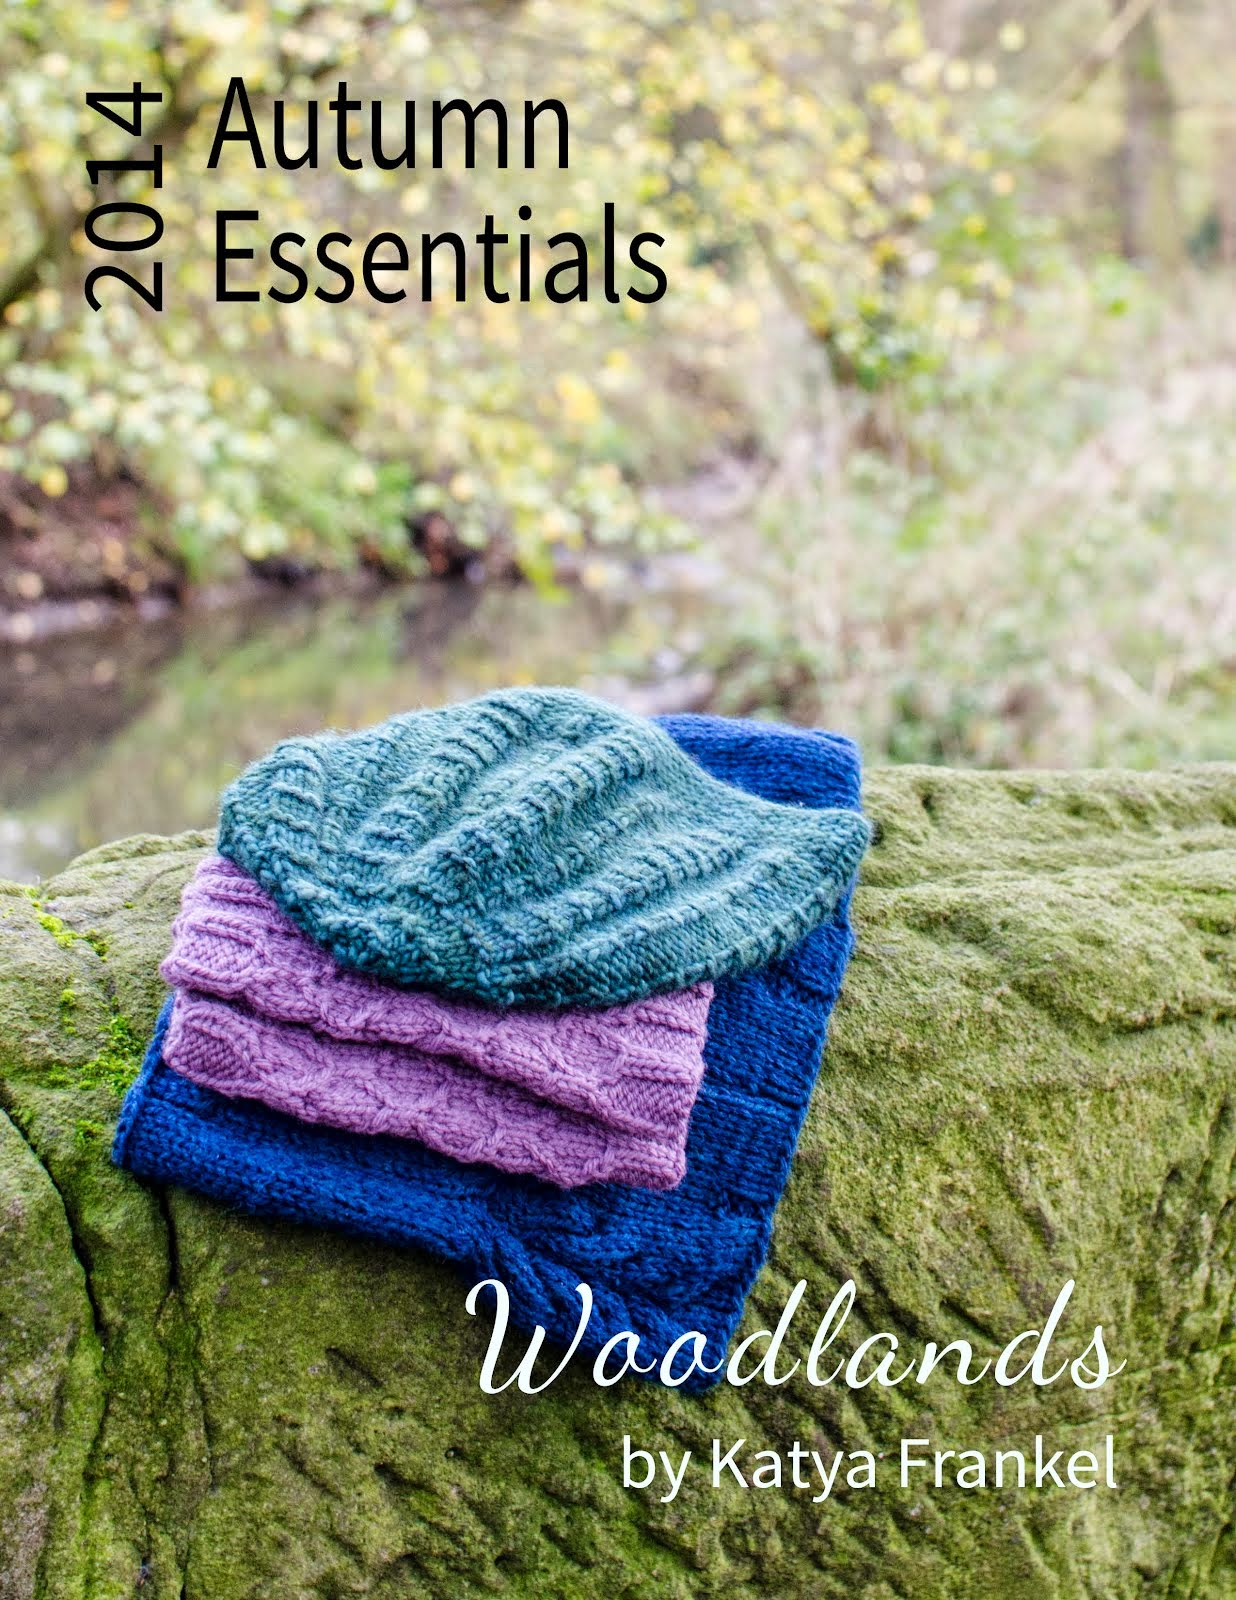 Autumn Essentials 2014 knitting patterns from Katya Frankel